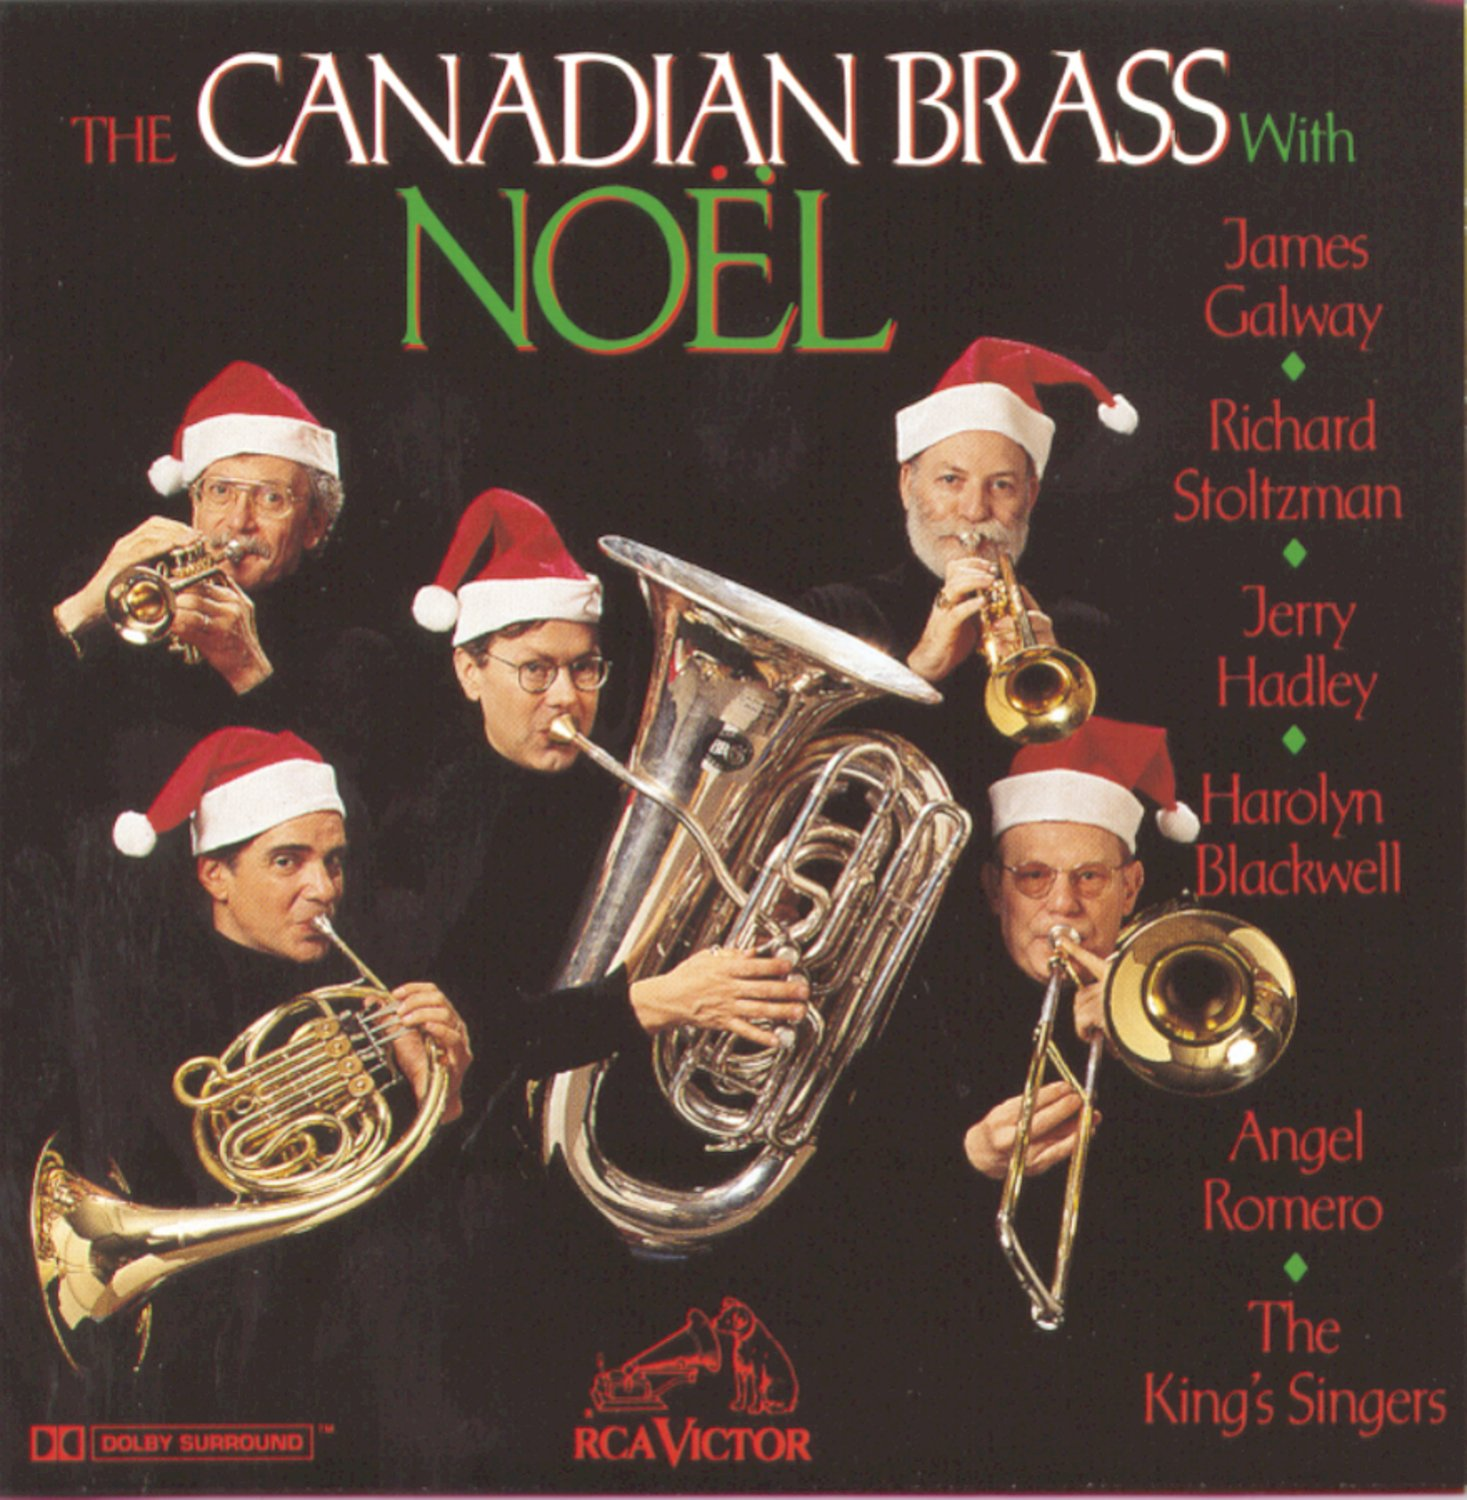 The Canadian Brass - The Canadian Brass Noel with Guest Stars ...